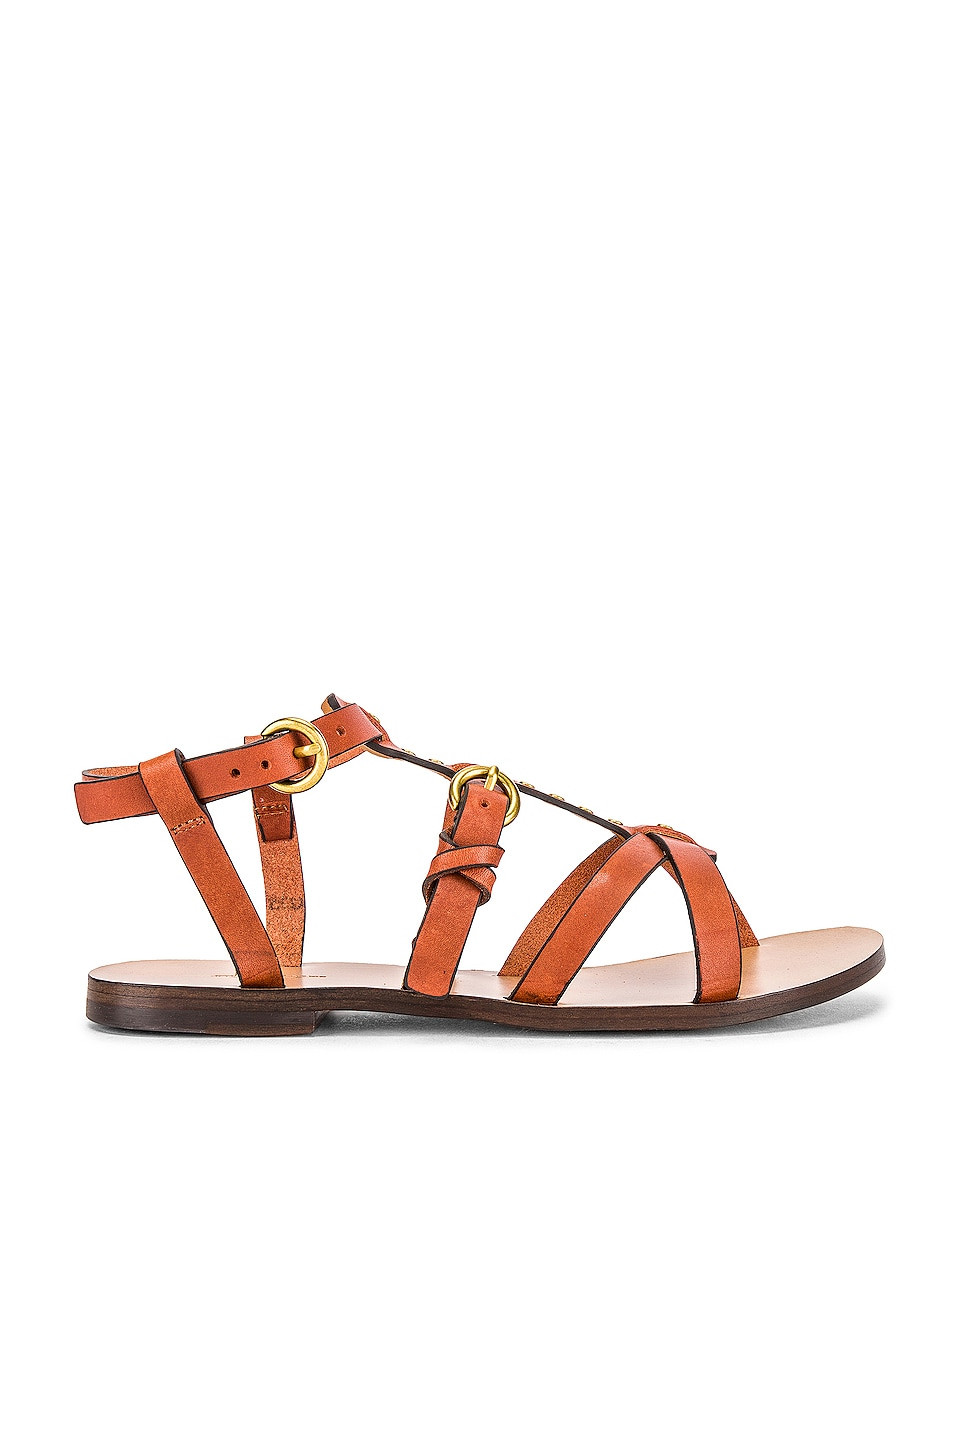 Jerome Dreyfuss Ulla Sandal in Gold